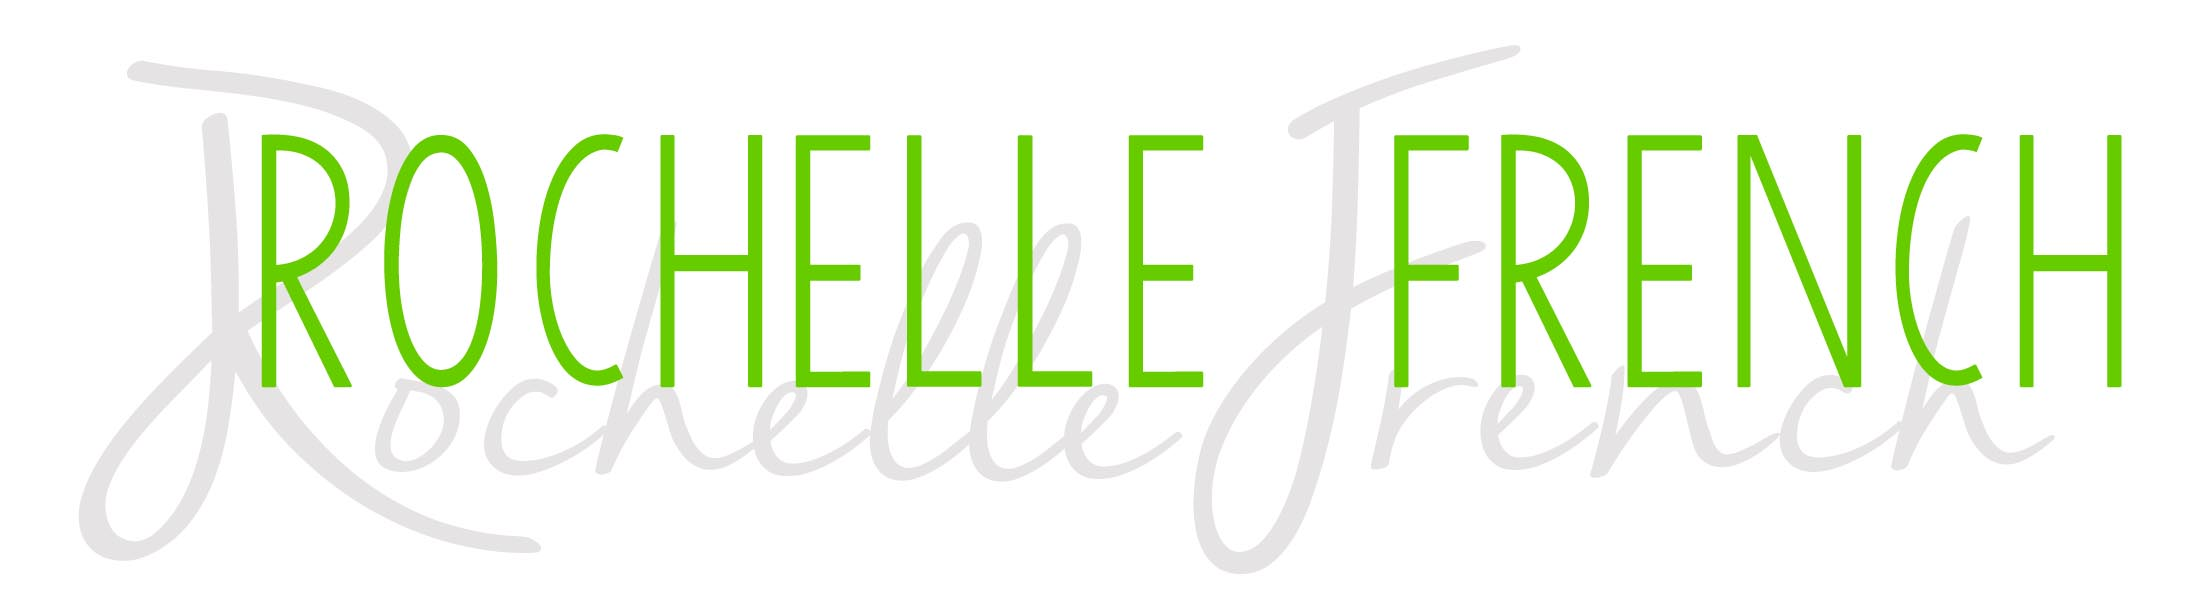 Rochelle French, Romance Author